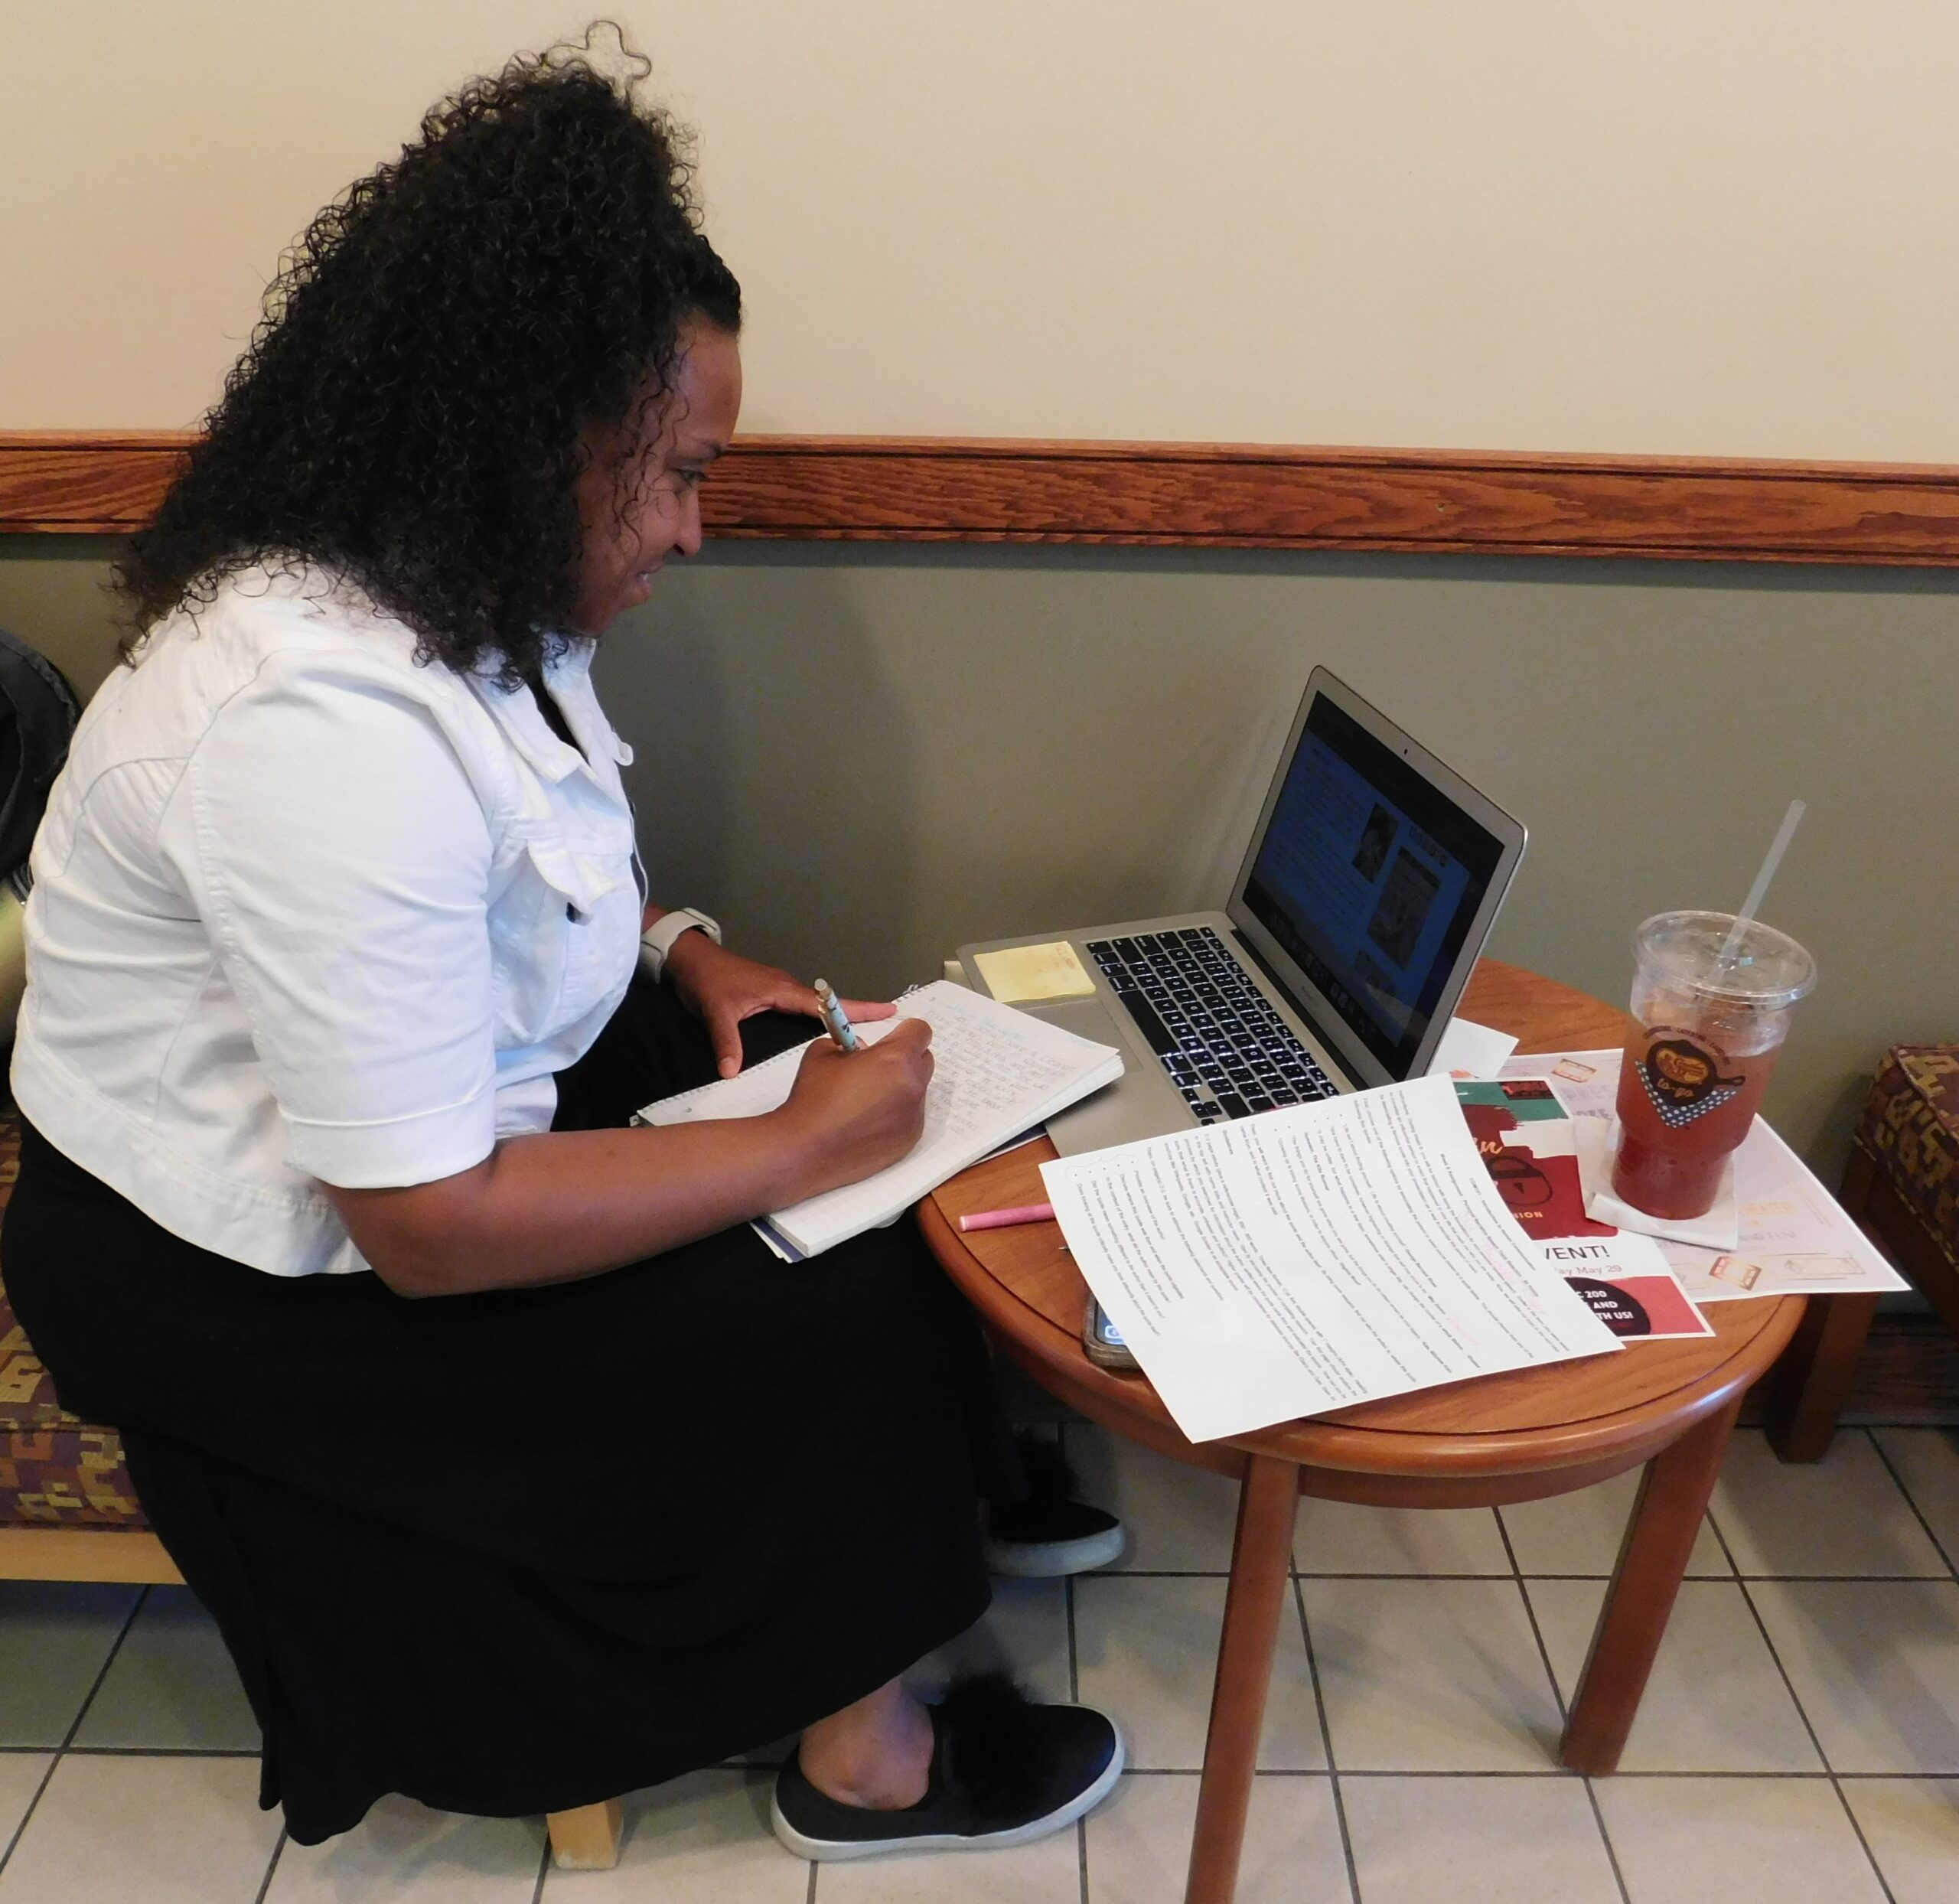 woman studying on laptop computer